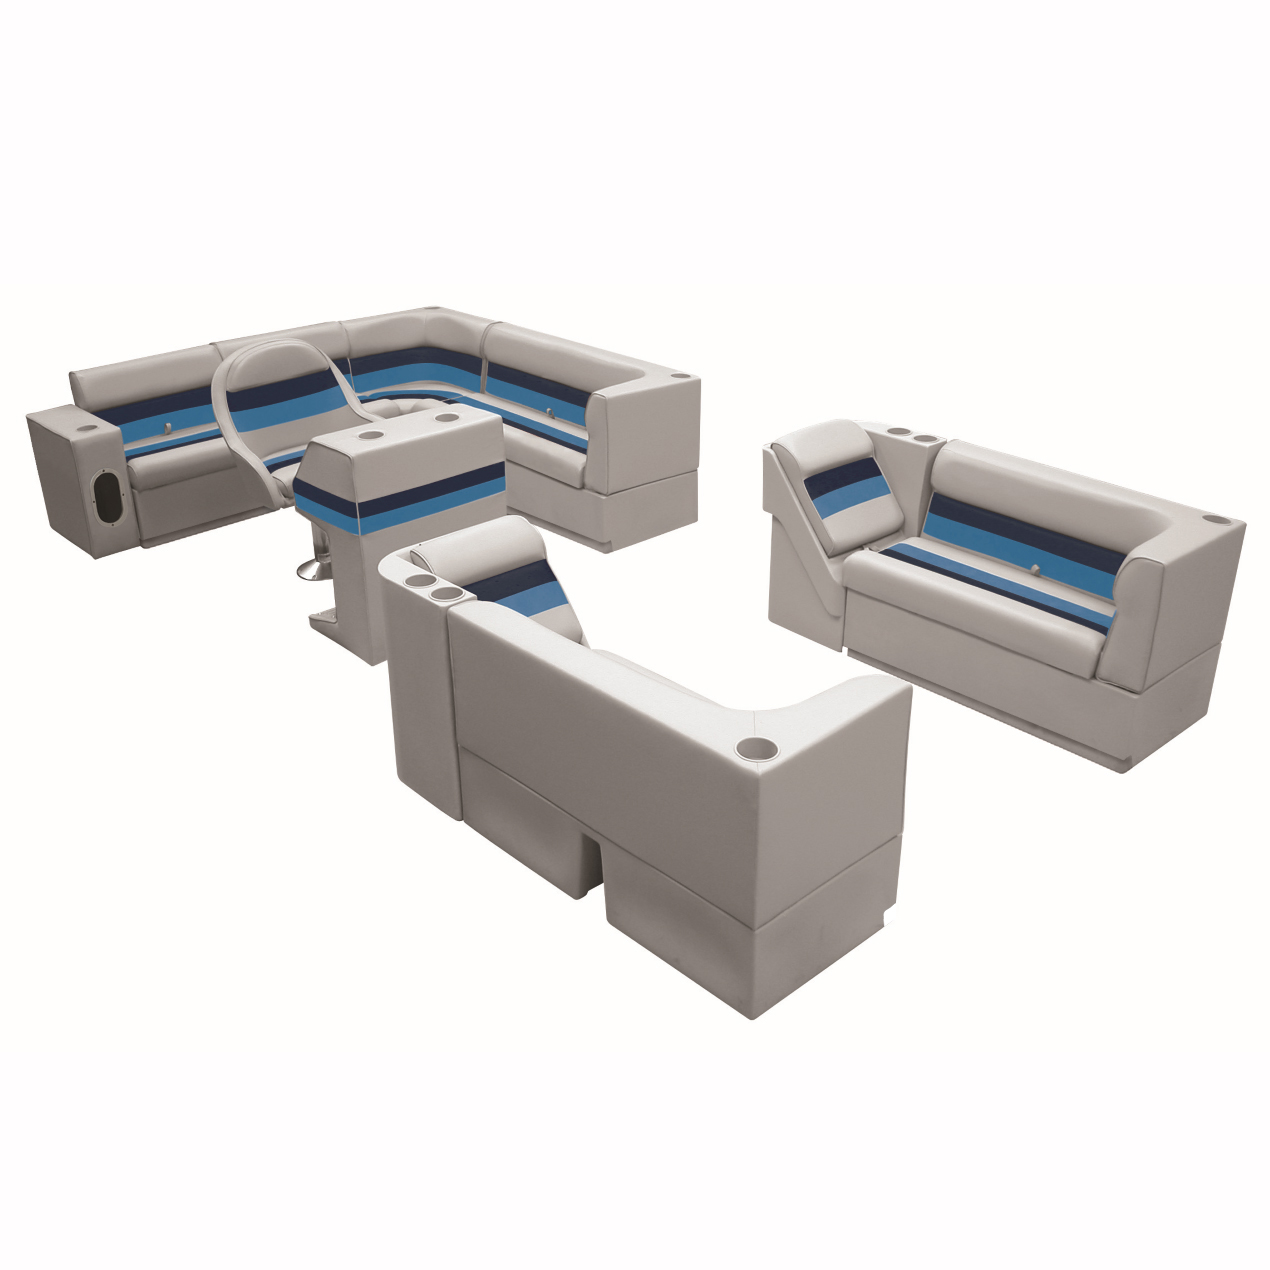 """Deluxe Pontoon Seats w/Toe Kick Base, Big """"L"""" Package Plus Stand, Gray/Navy/Blue"""